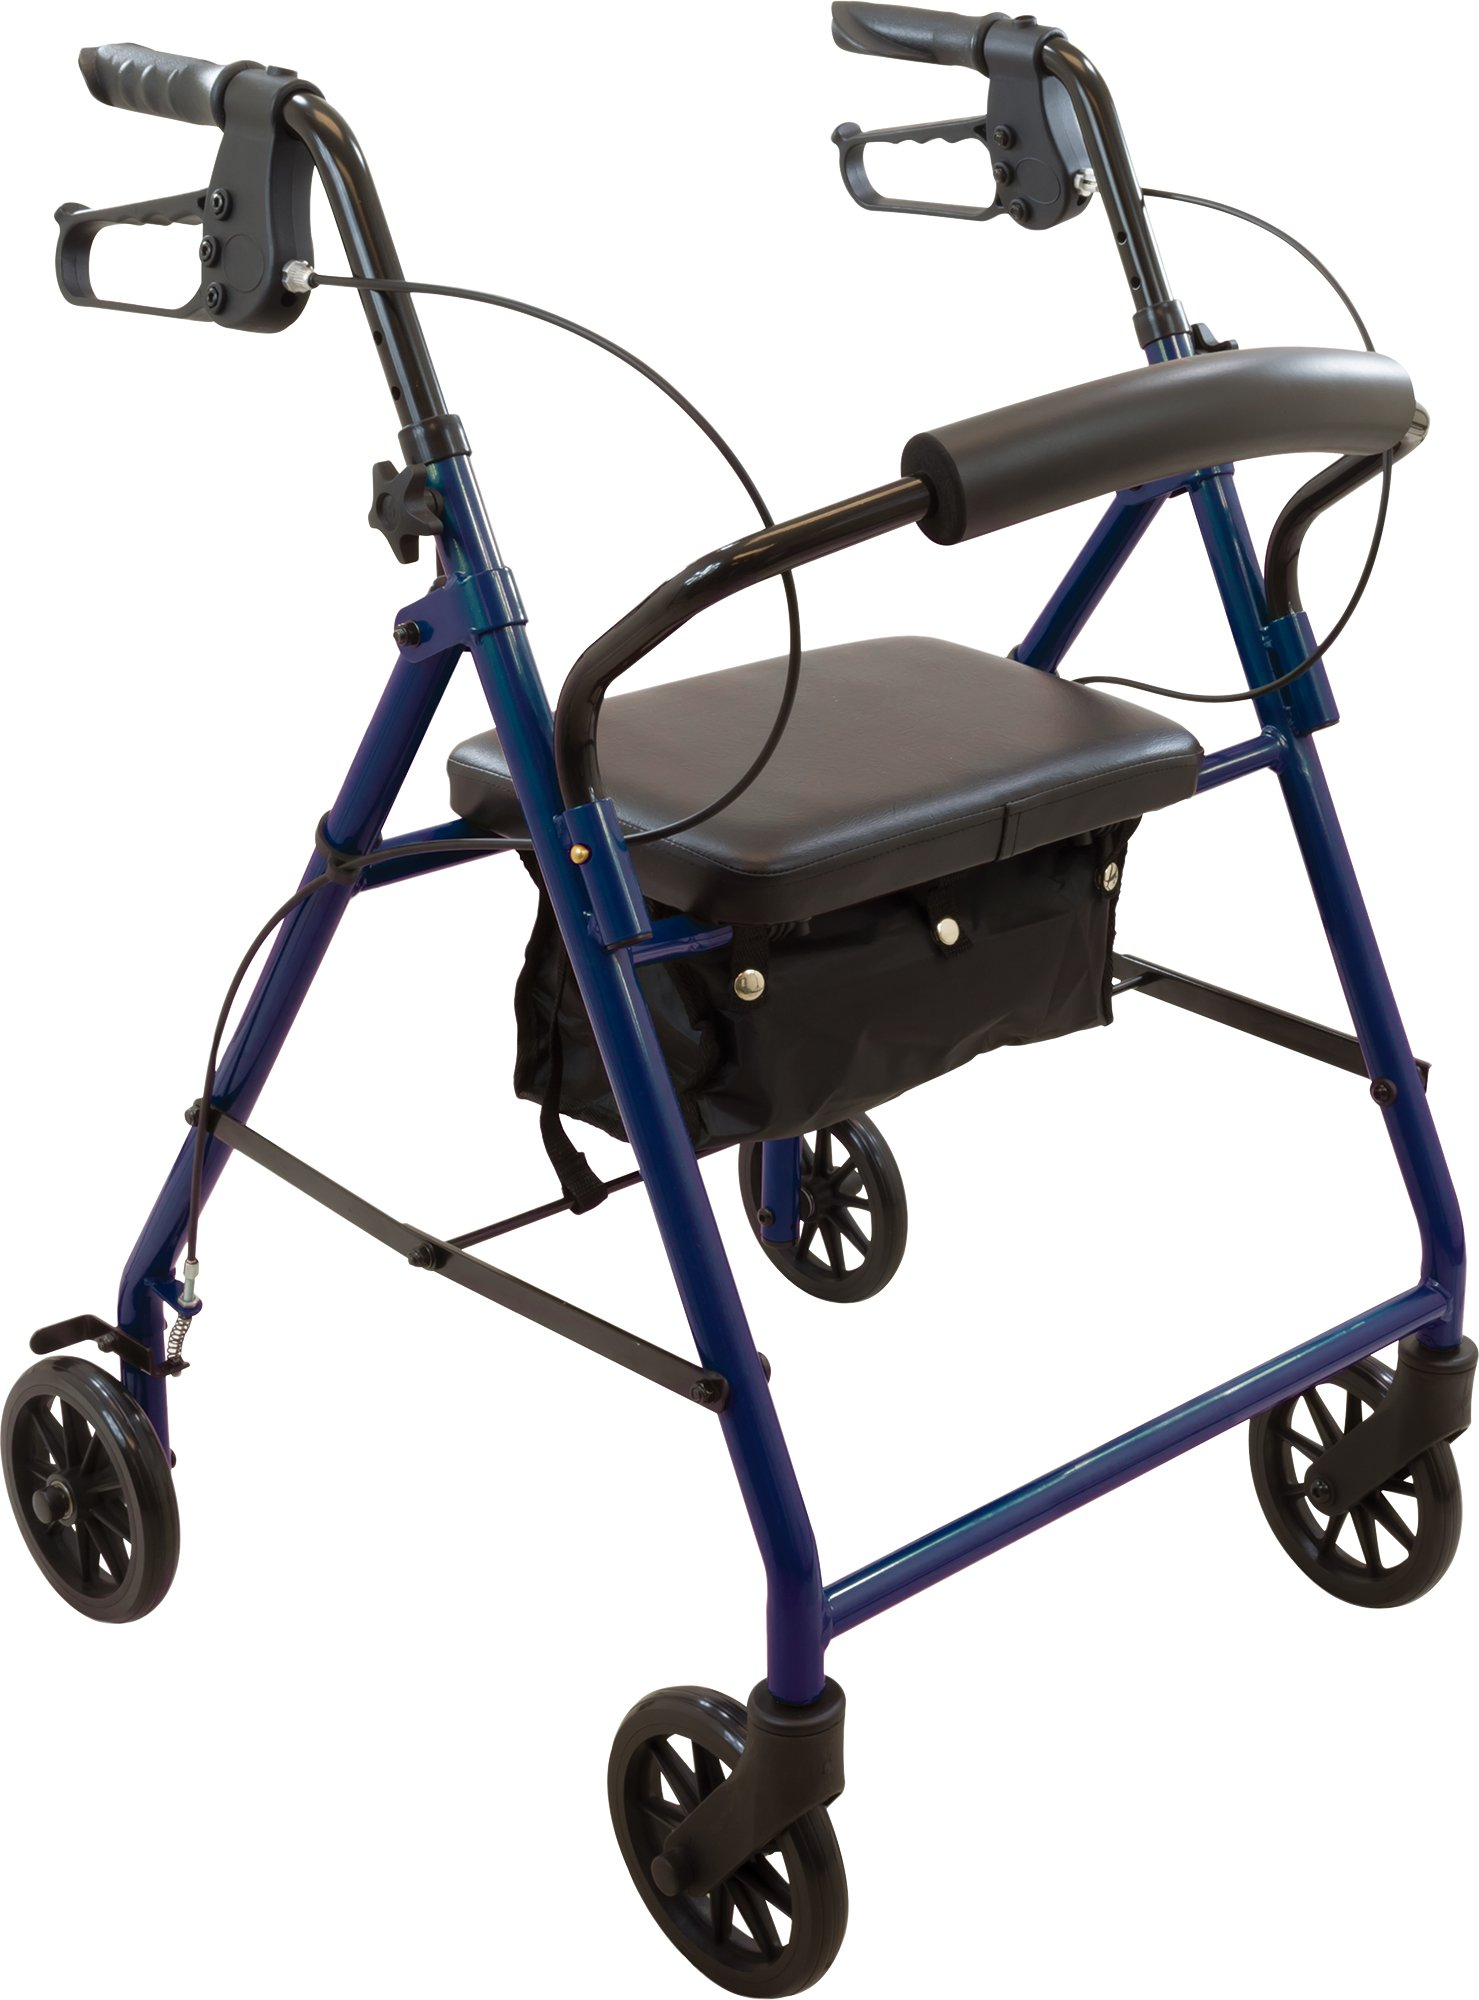 ProBasics Steel Rollator with 6-inch Wheels, Padded Seat and Backrest, Height Adjustable Handles, Folds for Storage & Transport, 300 Pound Weight Capacity, Blue